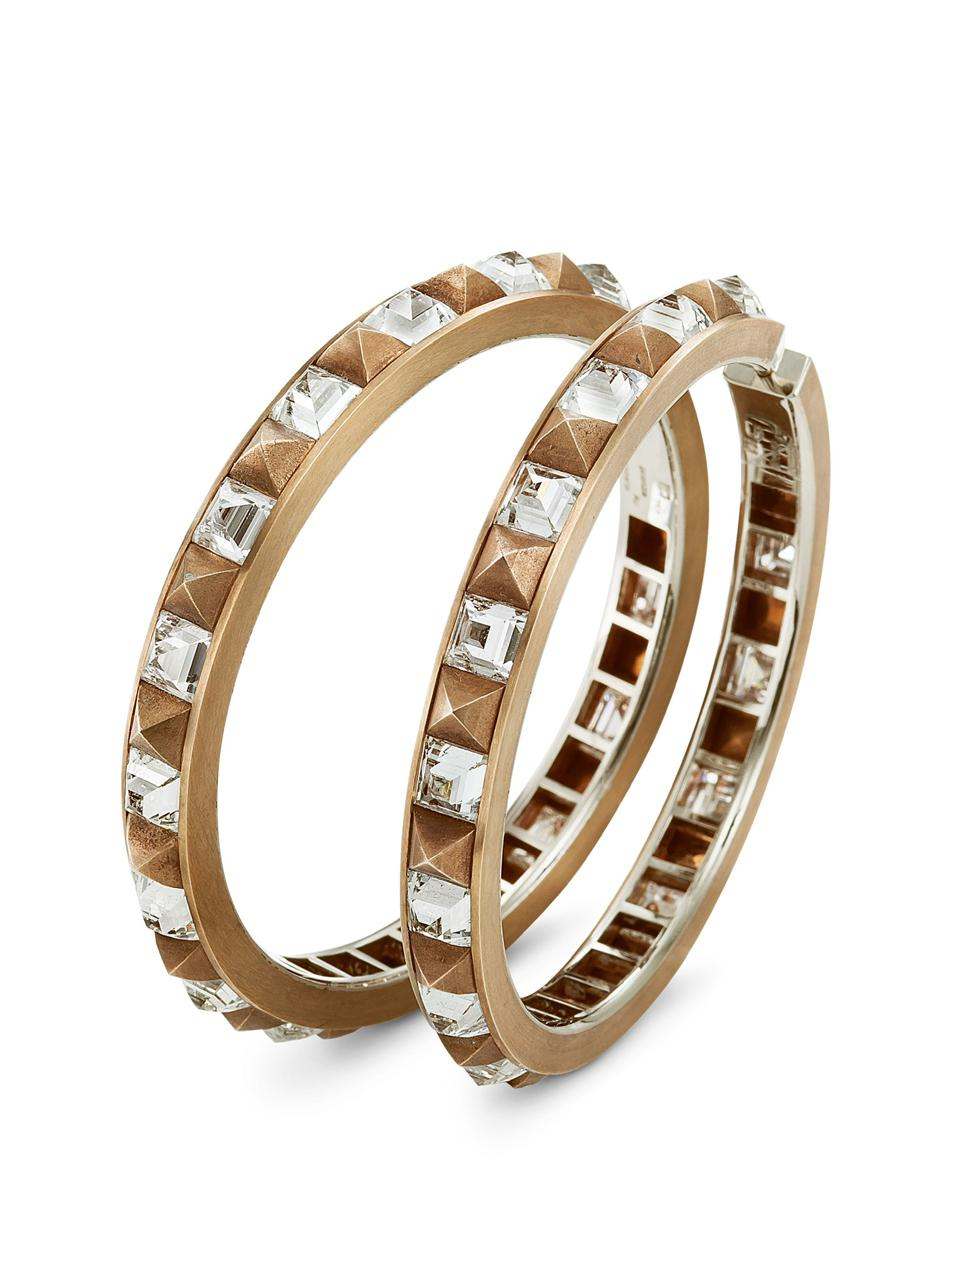 Natural diamond, bronze and white gold earrings by Munich-based heritage jeweler Hemmerle.